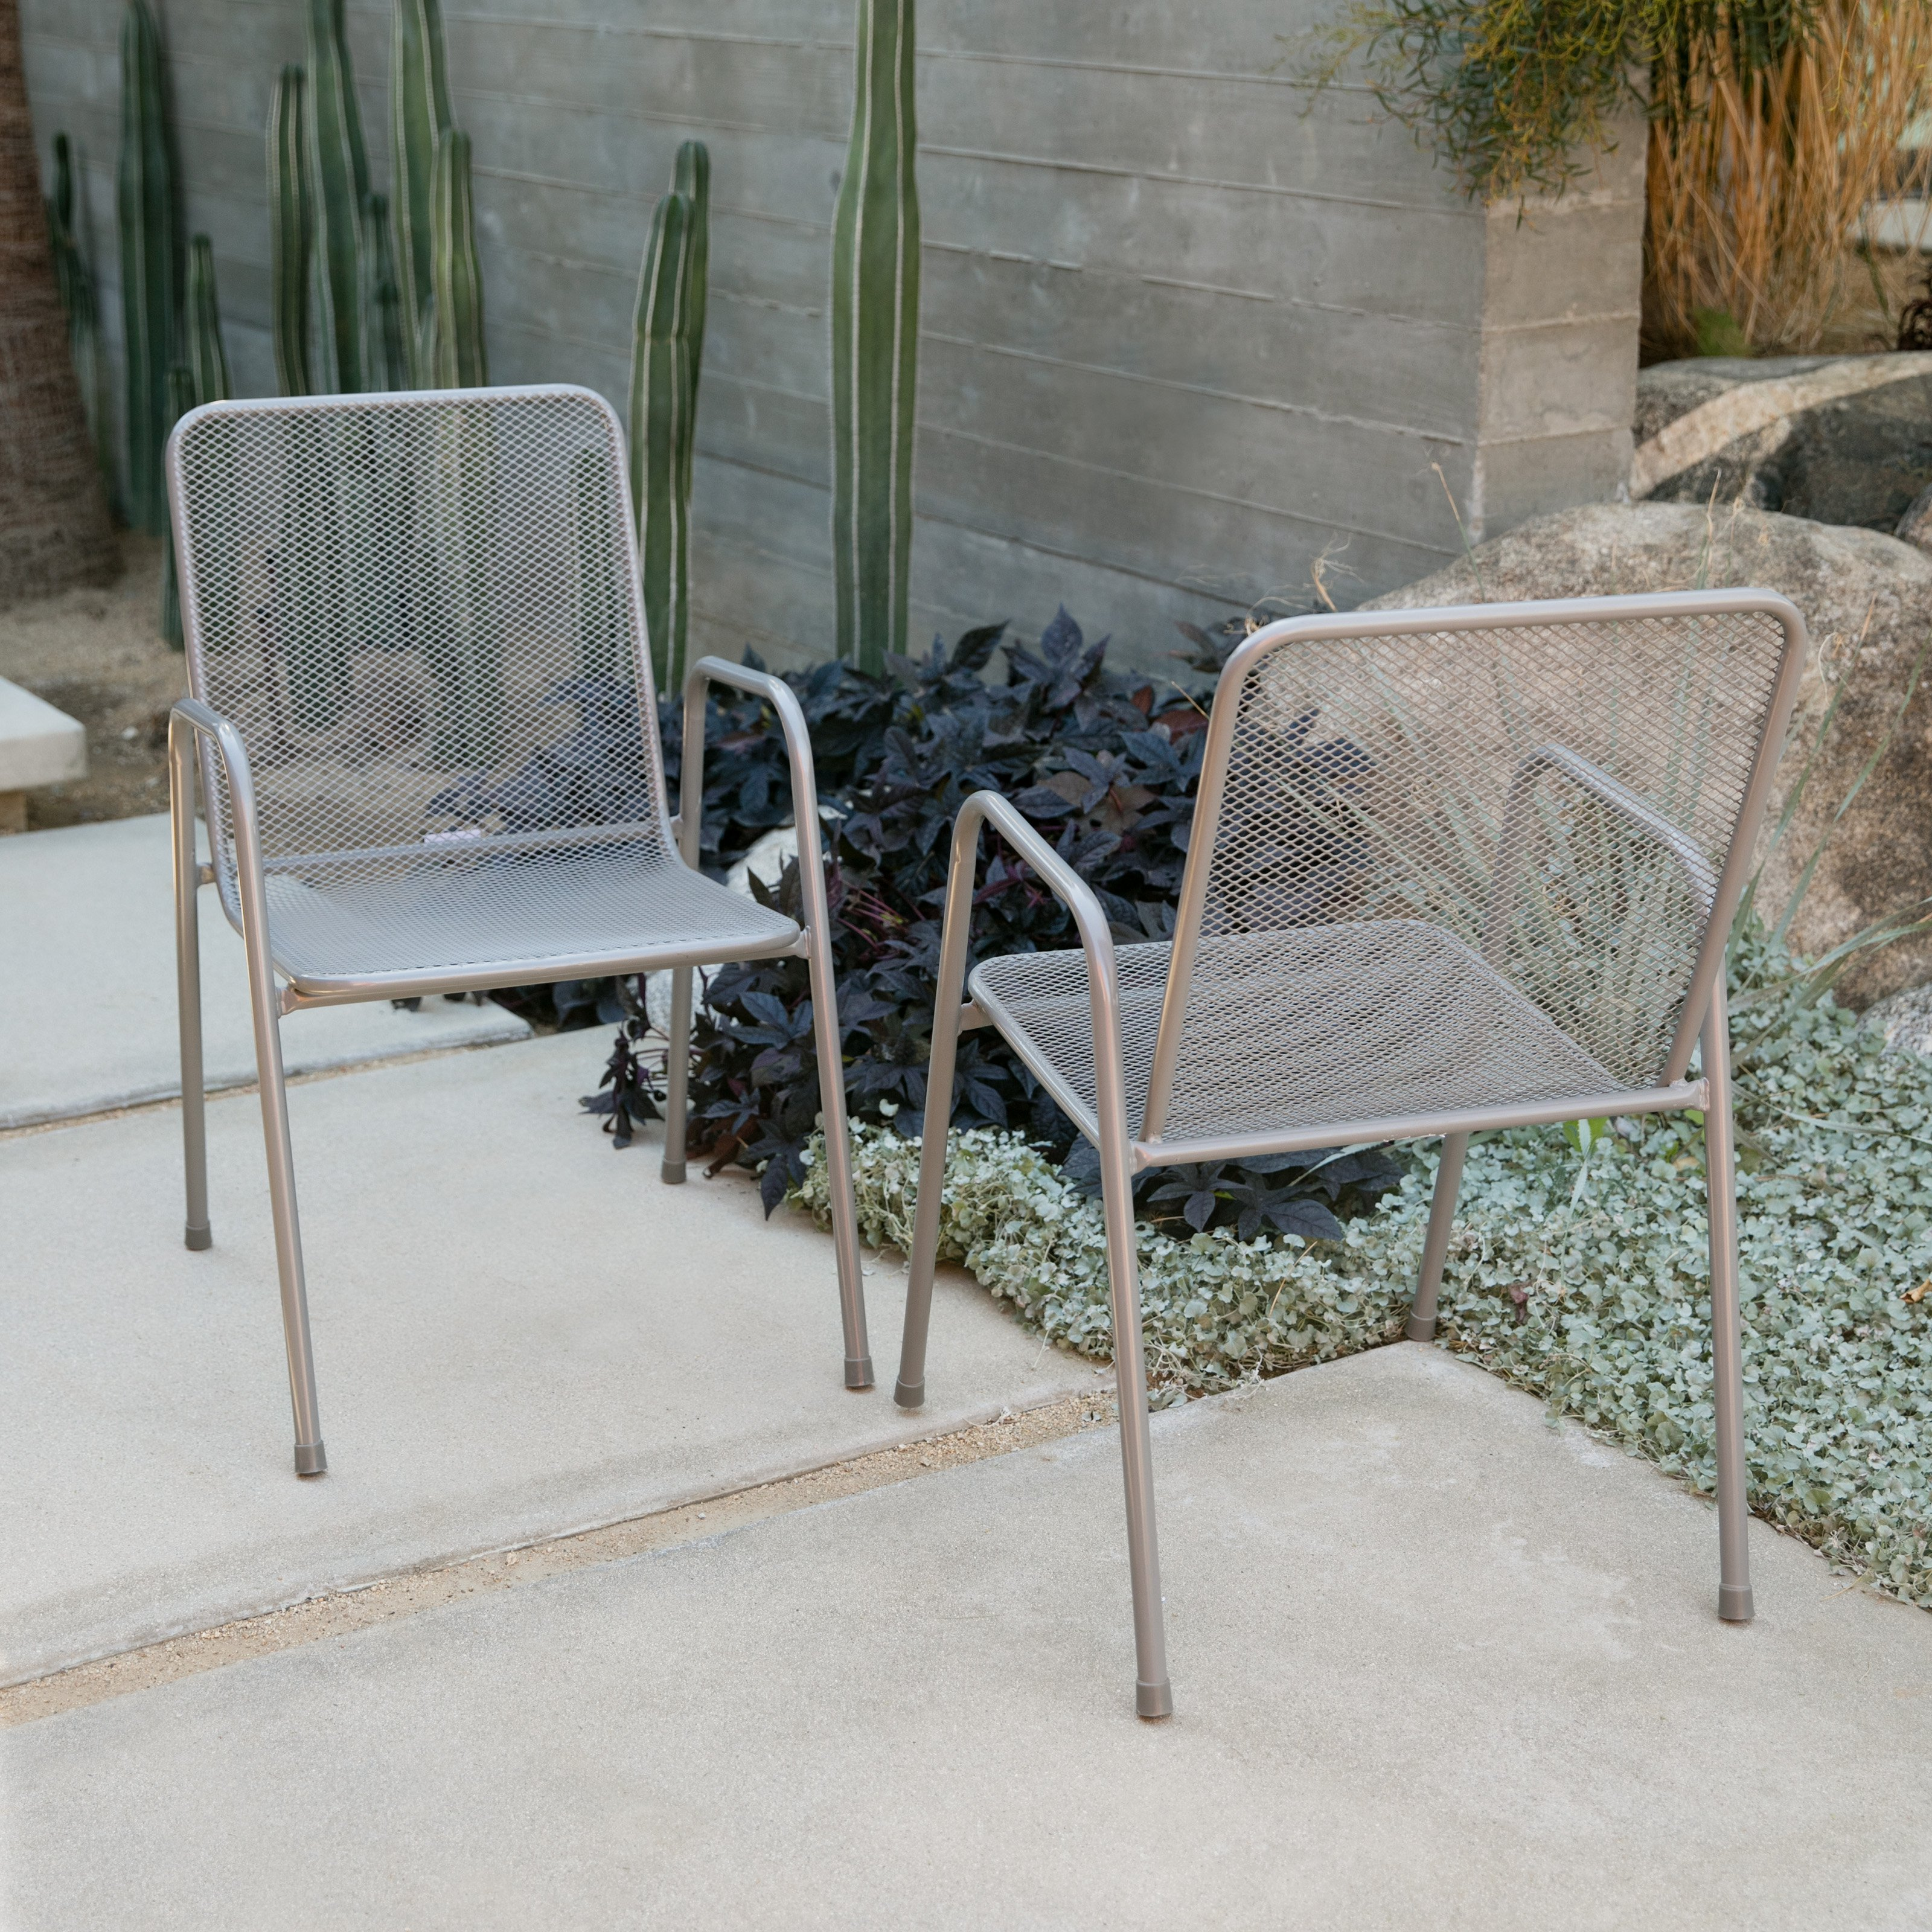 Coral Coast Sanders Steel Mesh Patio Dining Chair by